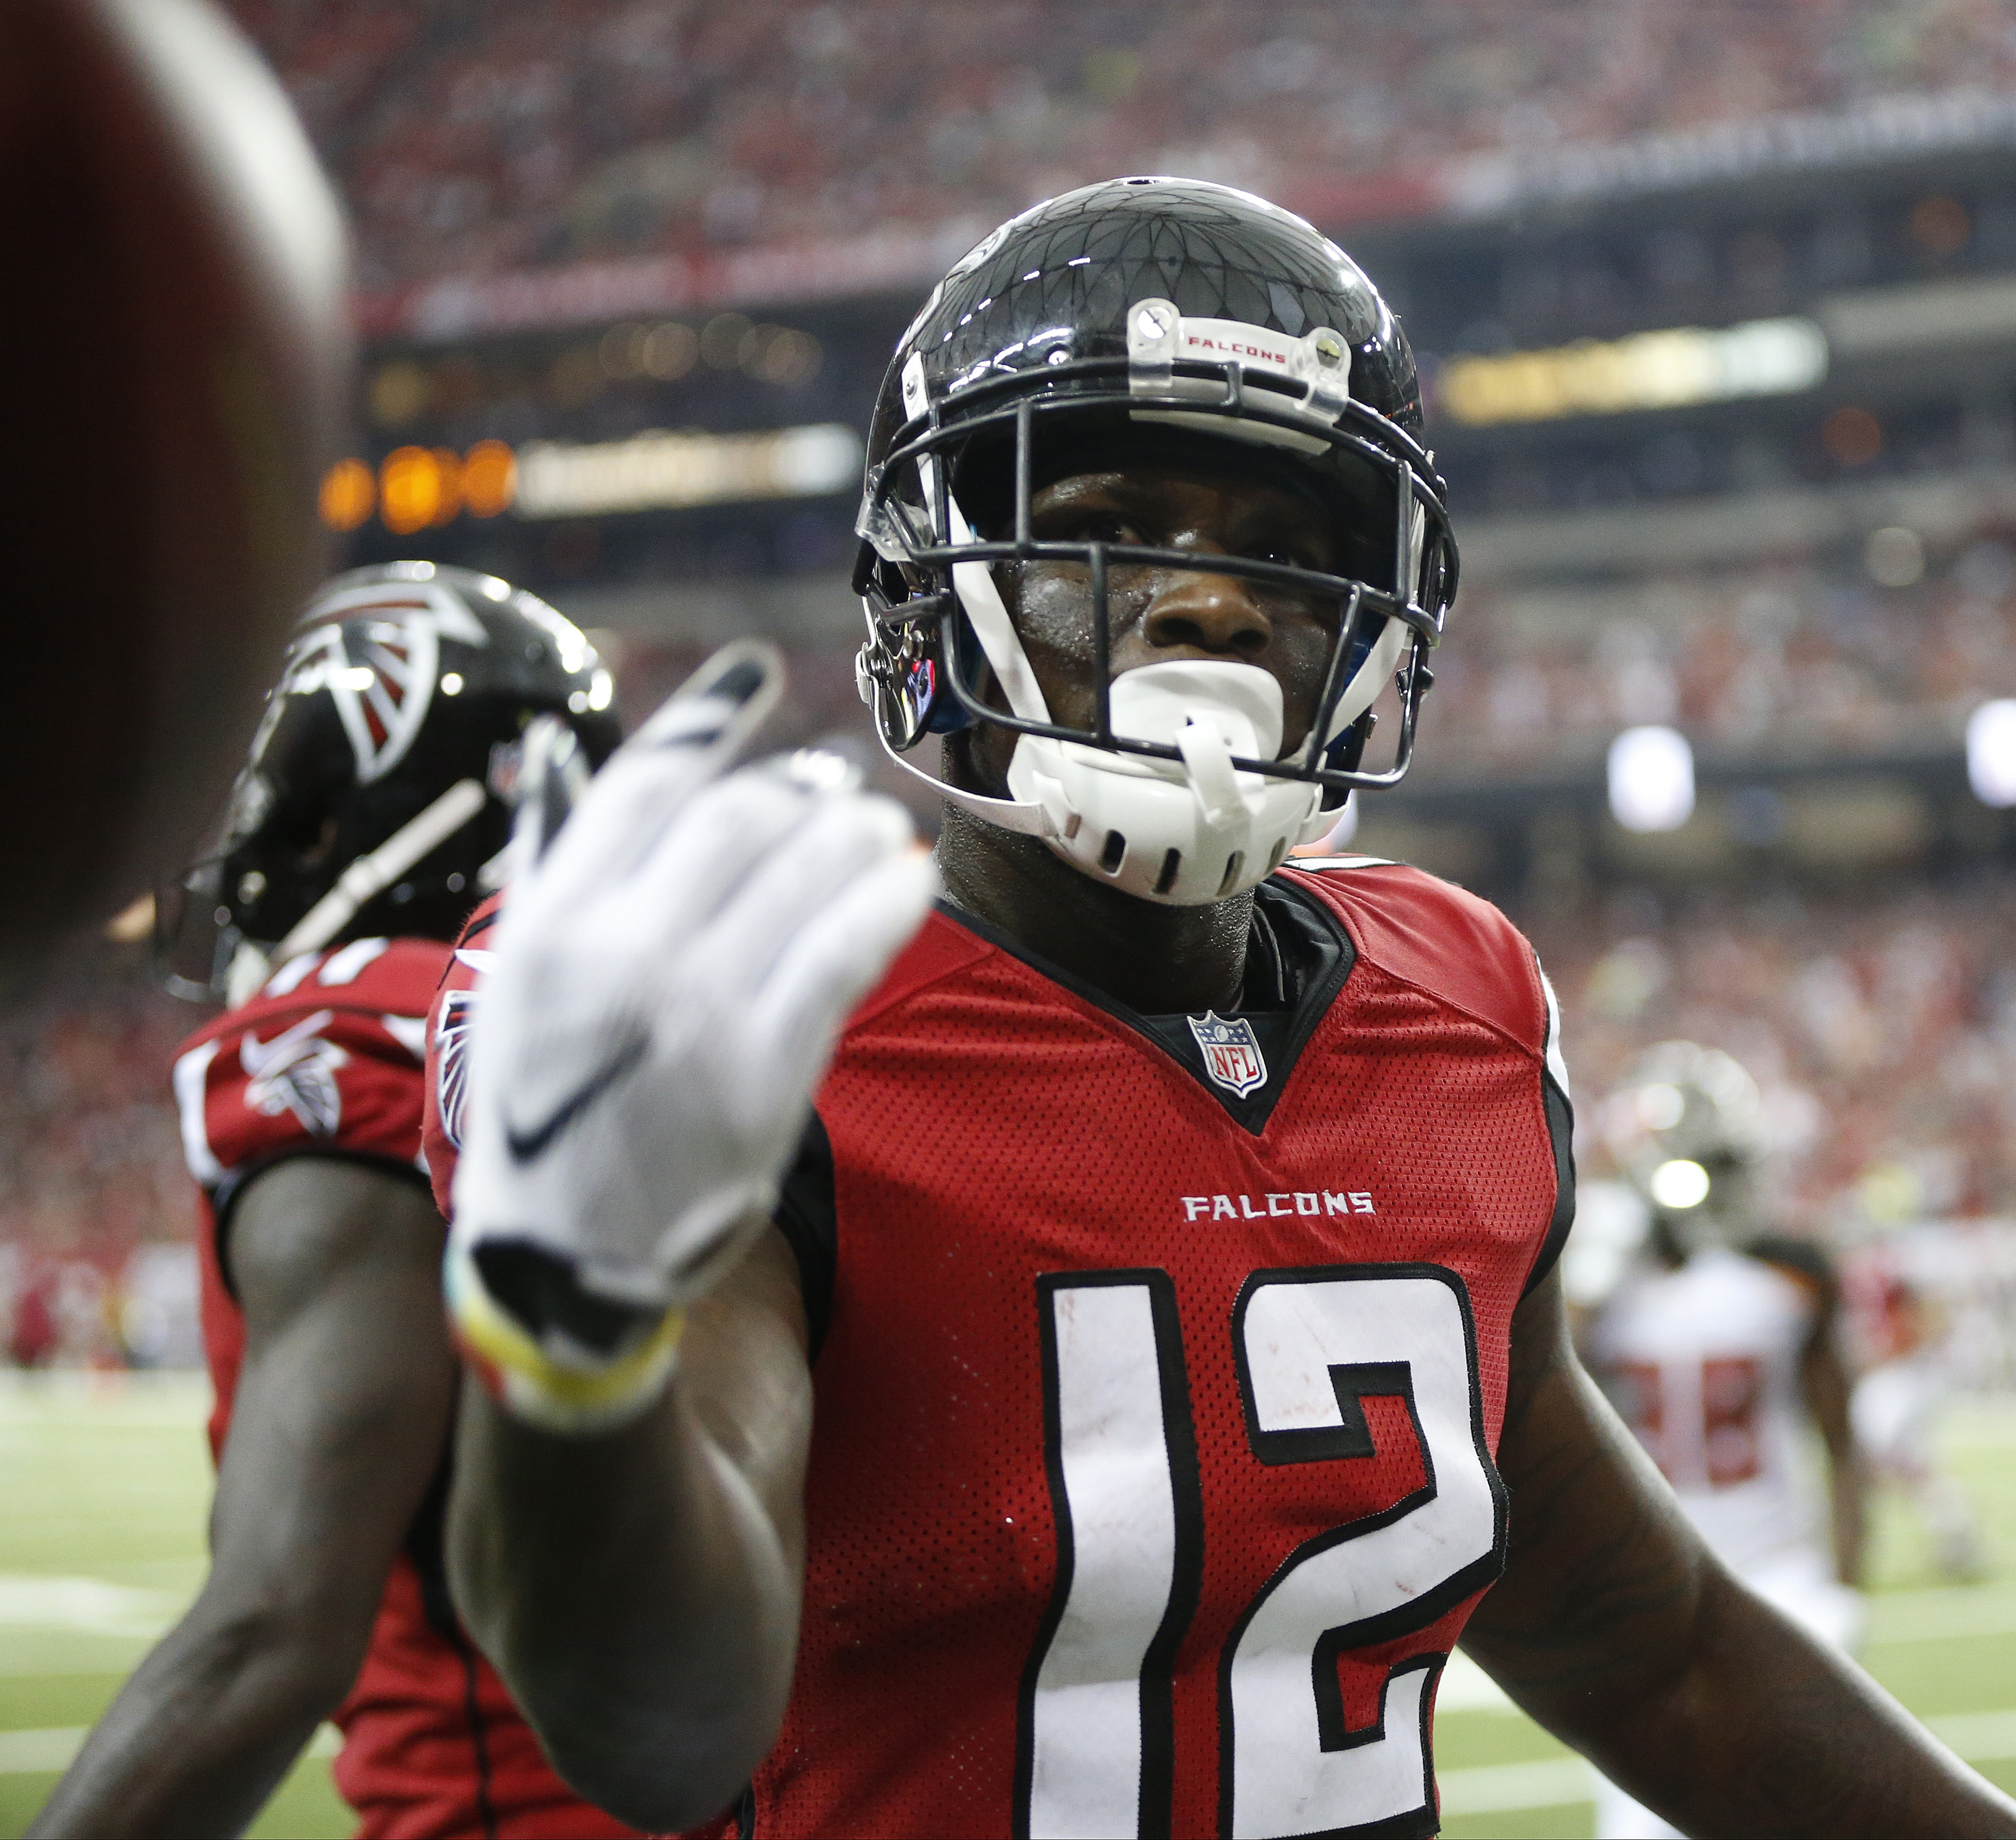 Atlanta Falcons wide receiver Mohamed Sanu (12) tosses the ball to the official after he scored on a two-point conversion against the Tampa Bay Buccaneers during the second half of an NFL football game, Sunday, Sept. 11, 2016, in Atlanta. (AP Photo/John B